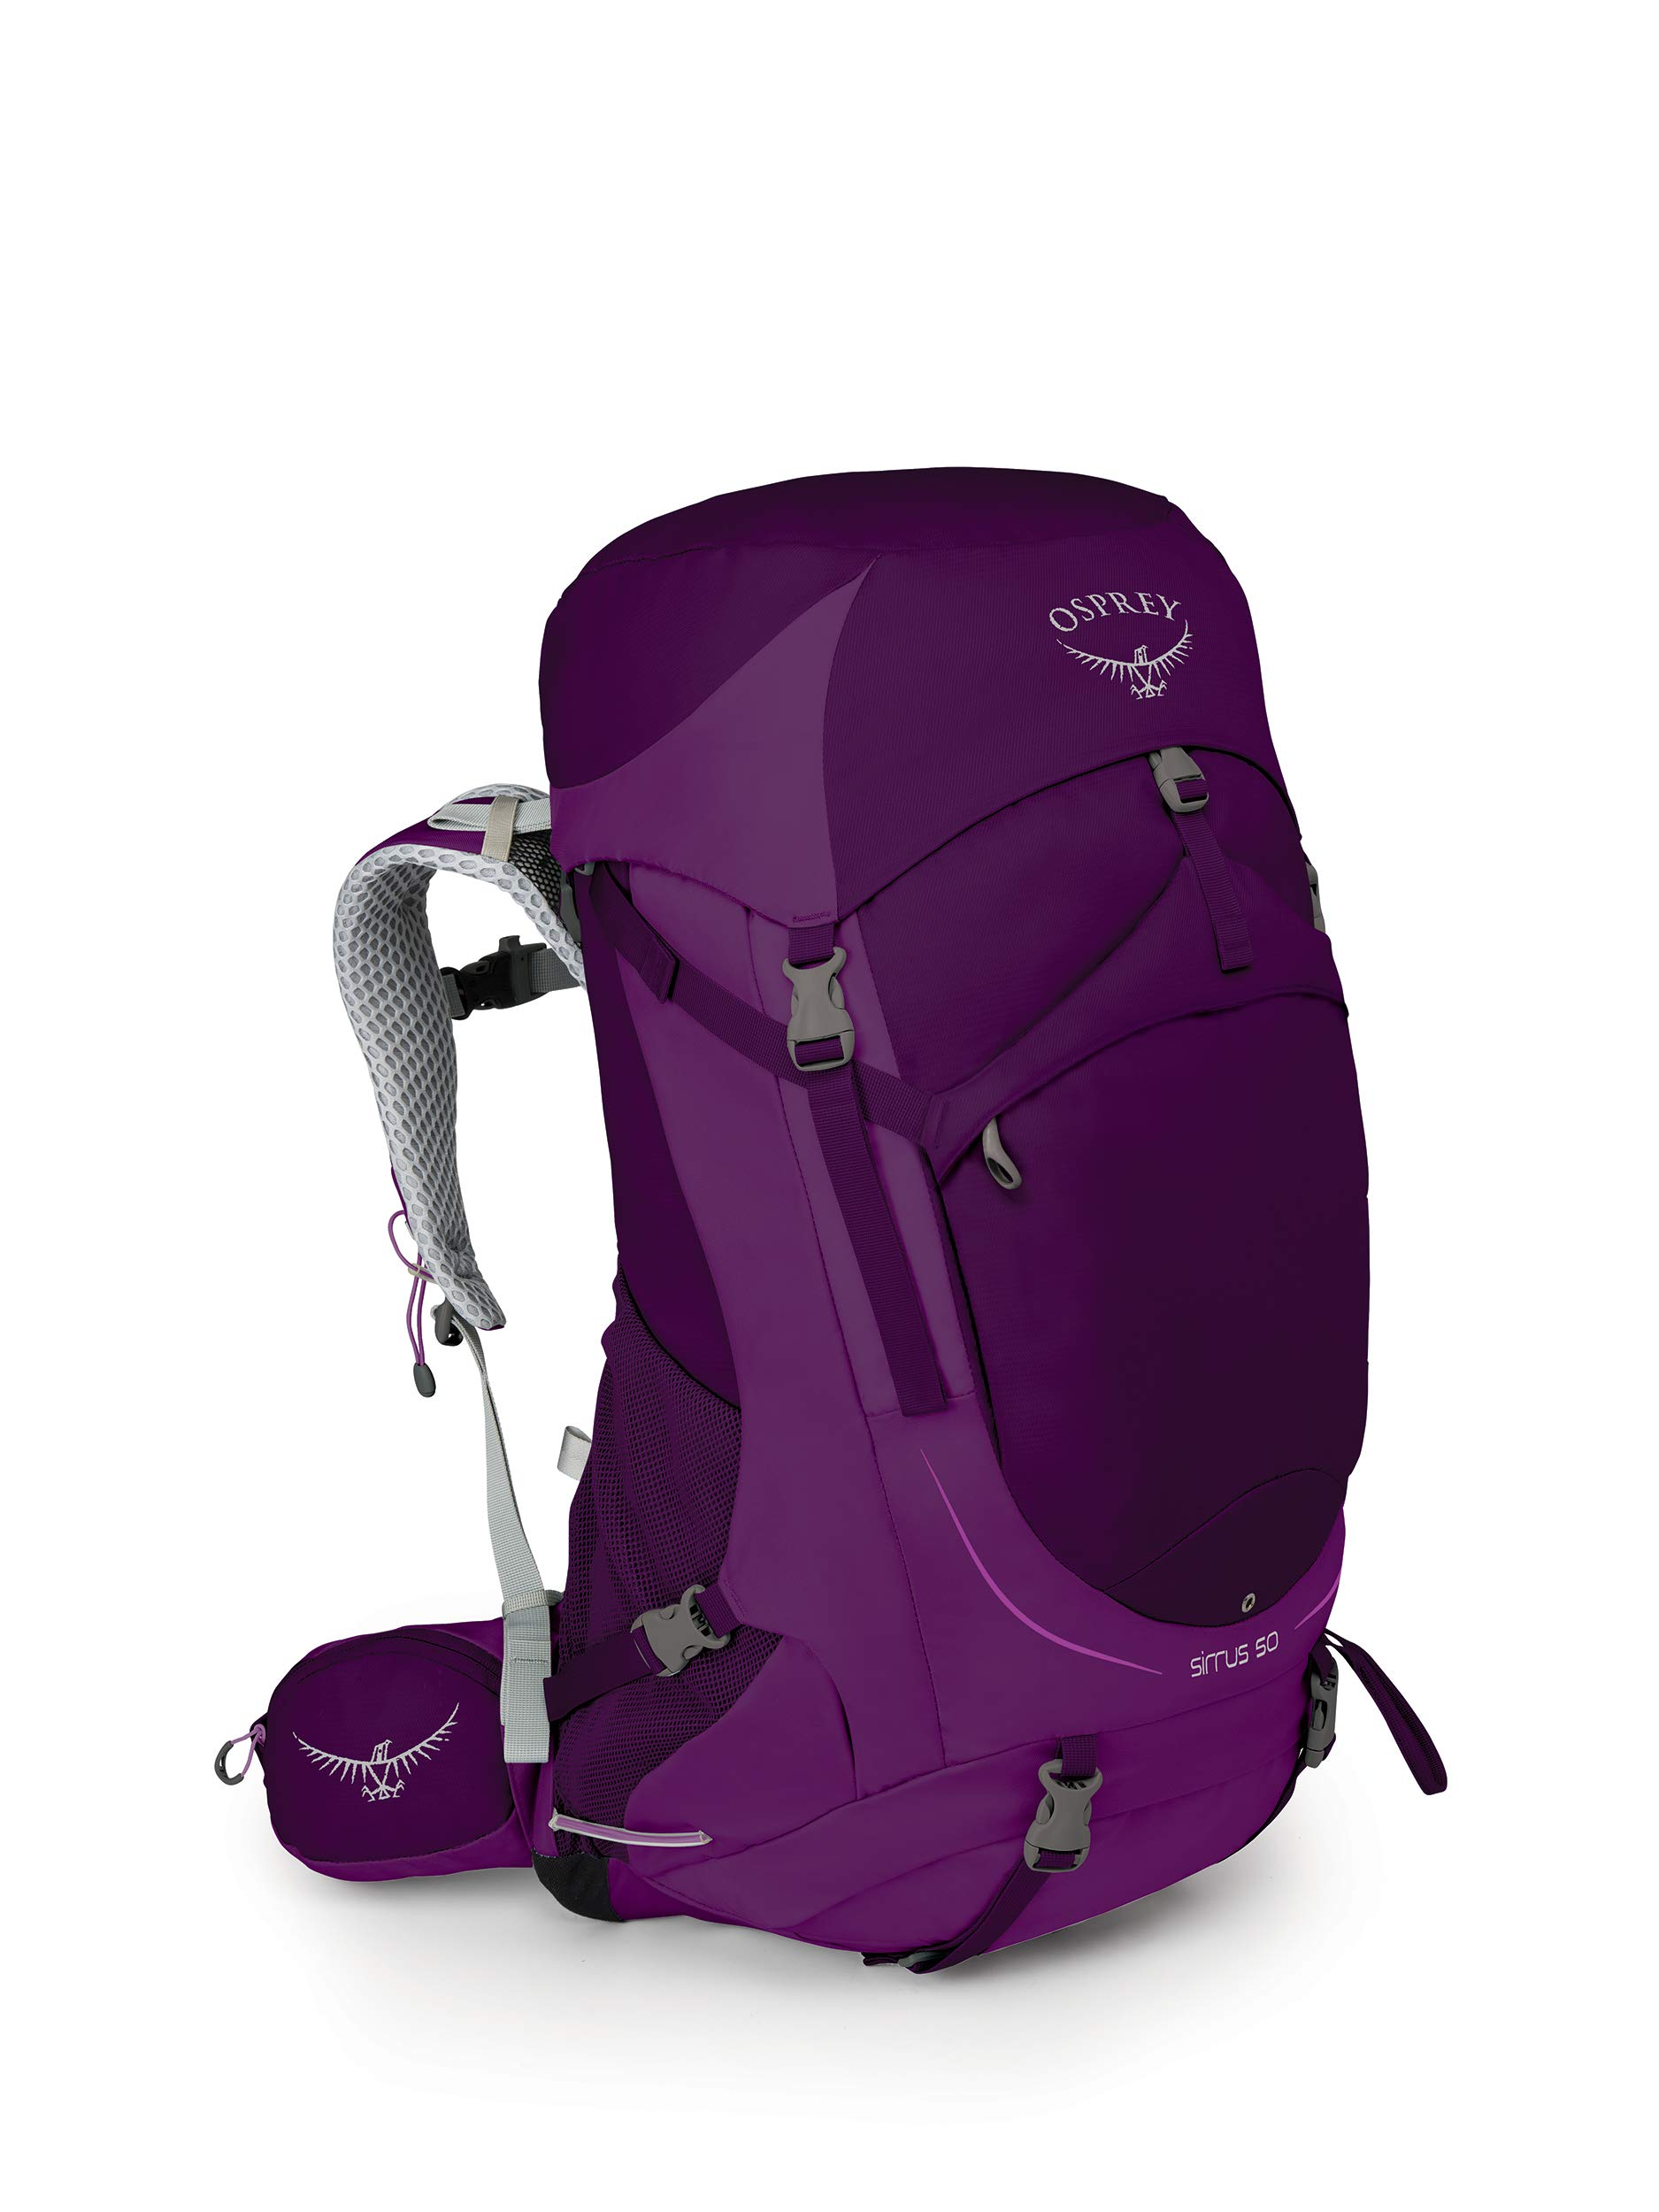 Osprey Packs Sirrus 50 Women's Backpacking Backpack, Ruska Purple, Small/Medium by Osprey